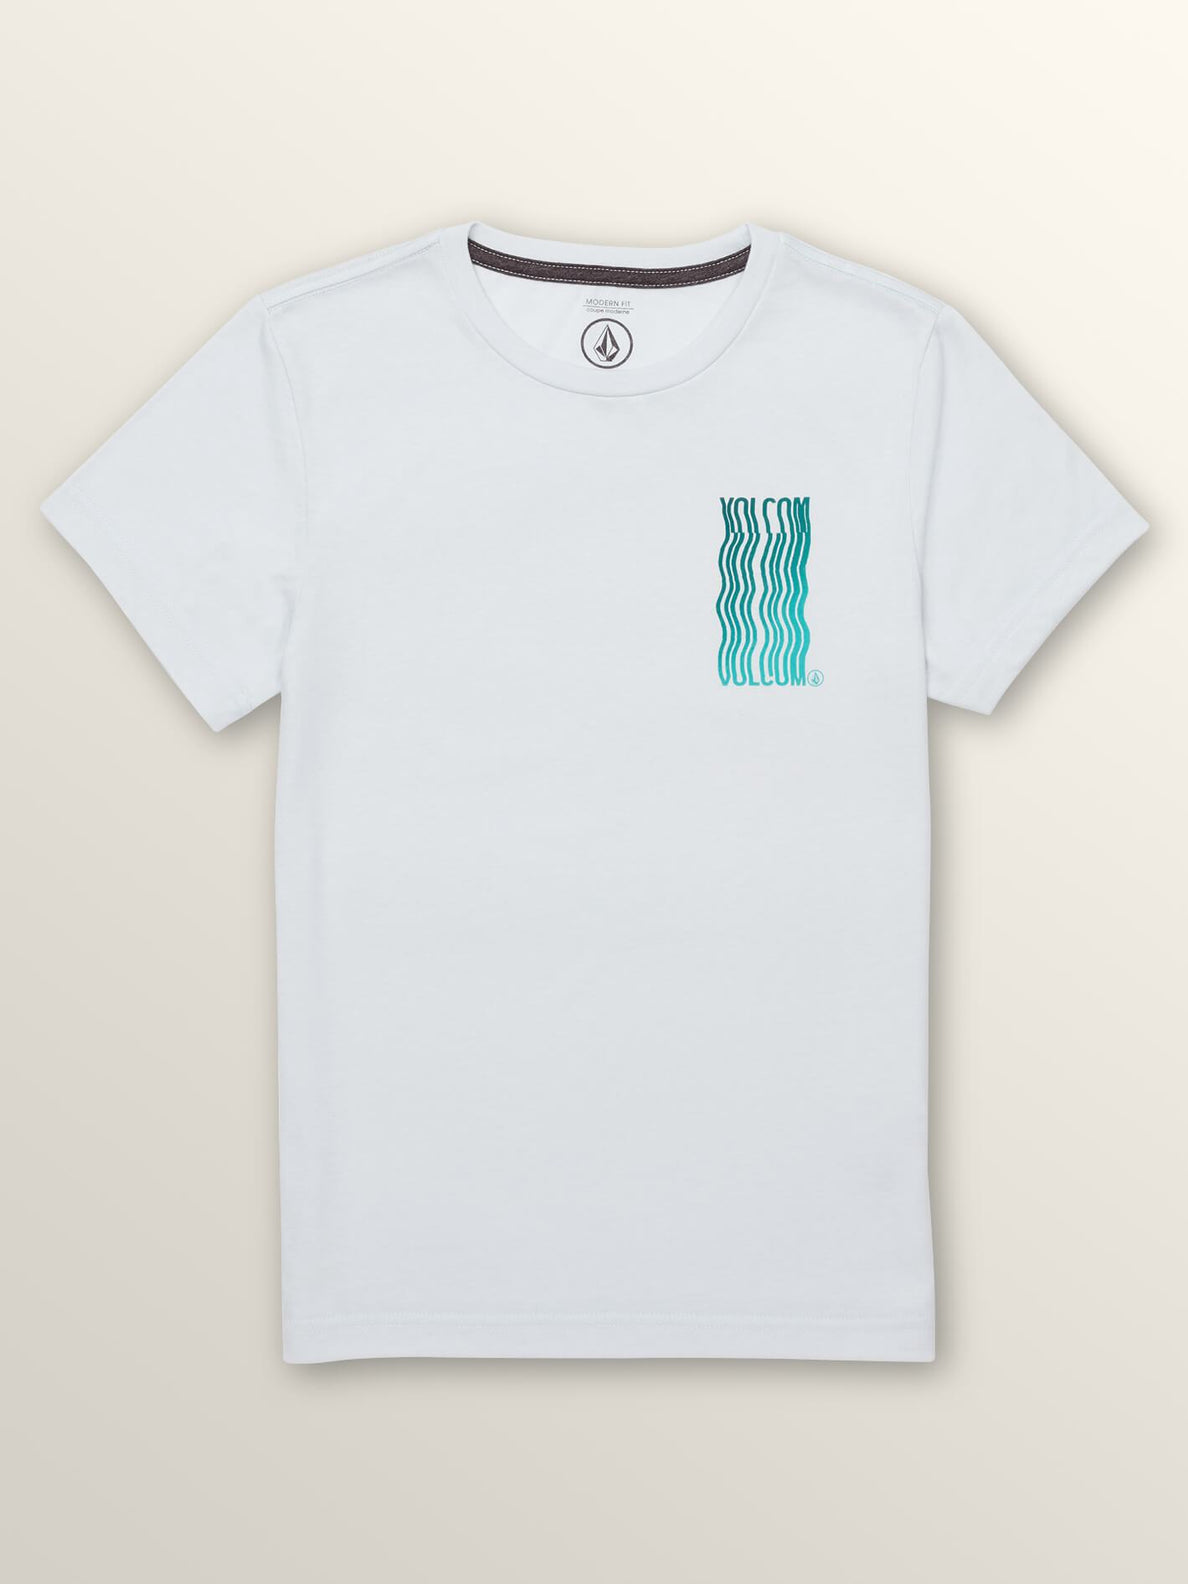 Big Boys Extend Short Sleeve Tee In White, Front View